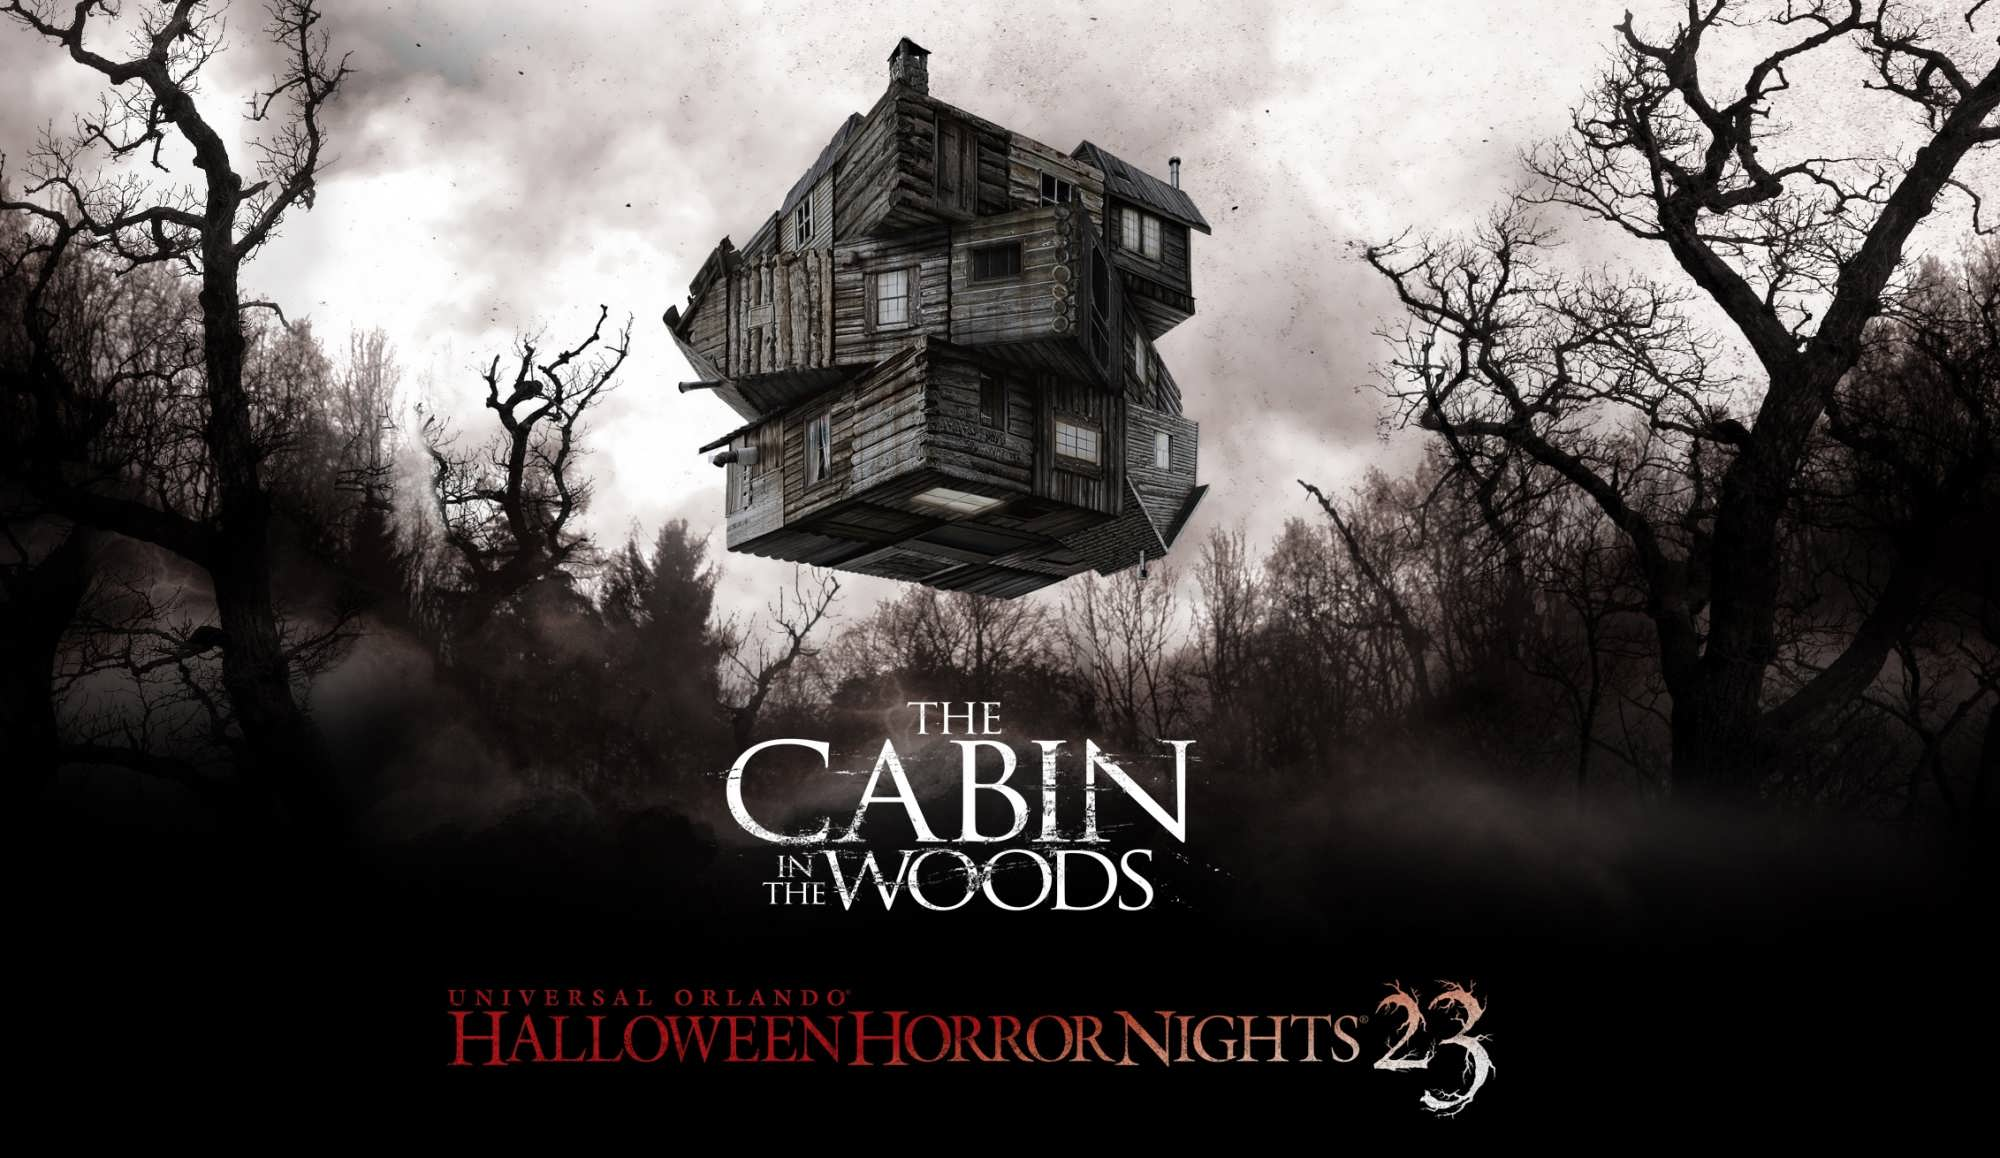 Cabin in the Woods scares at Halloween Horror Nights